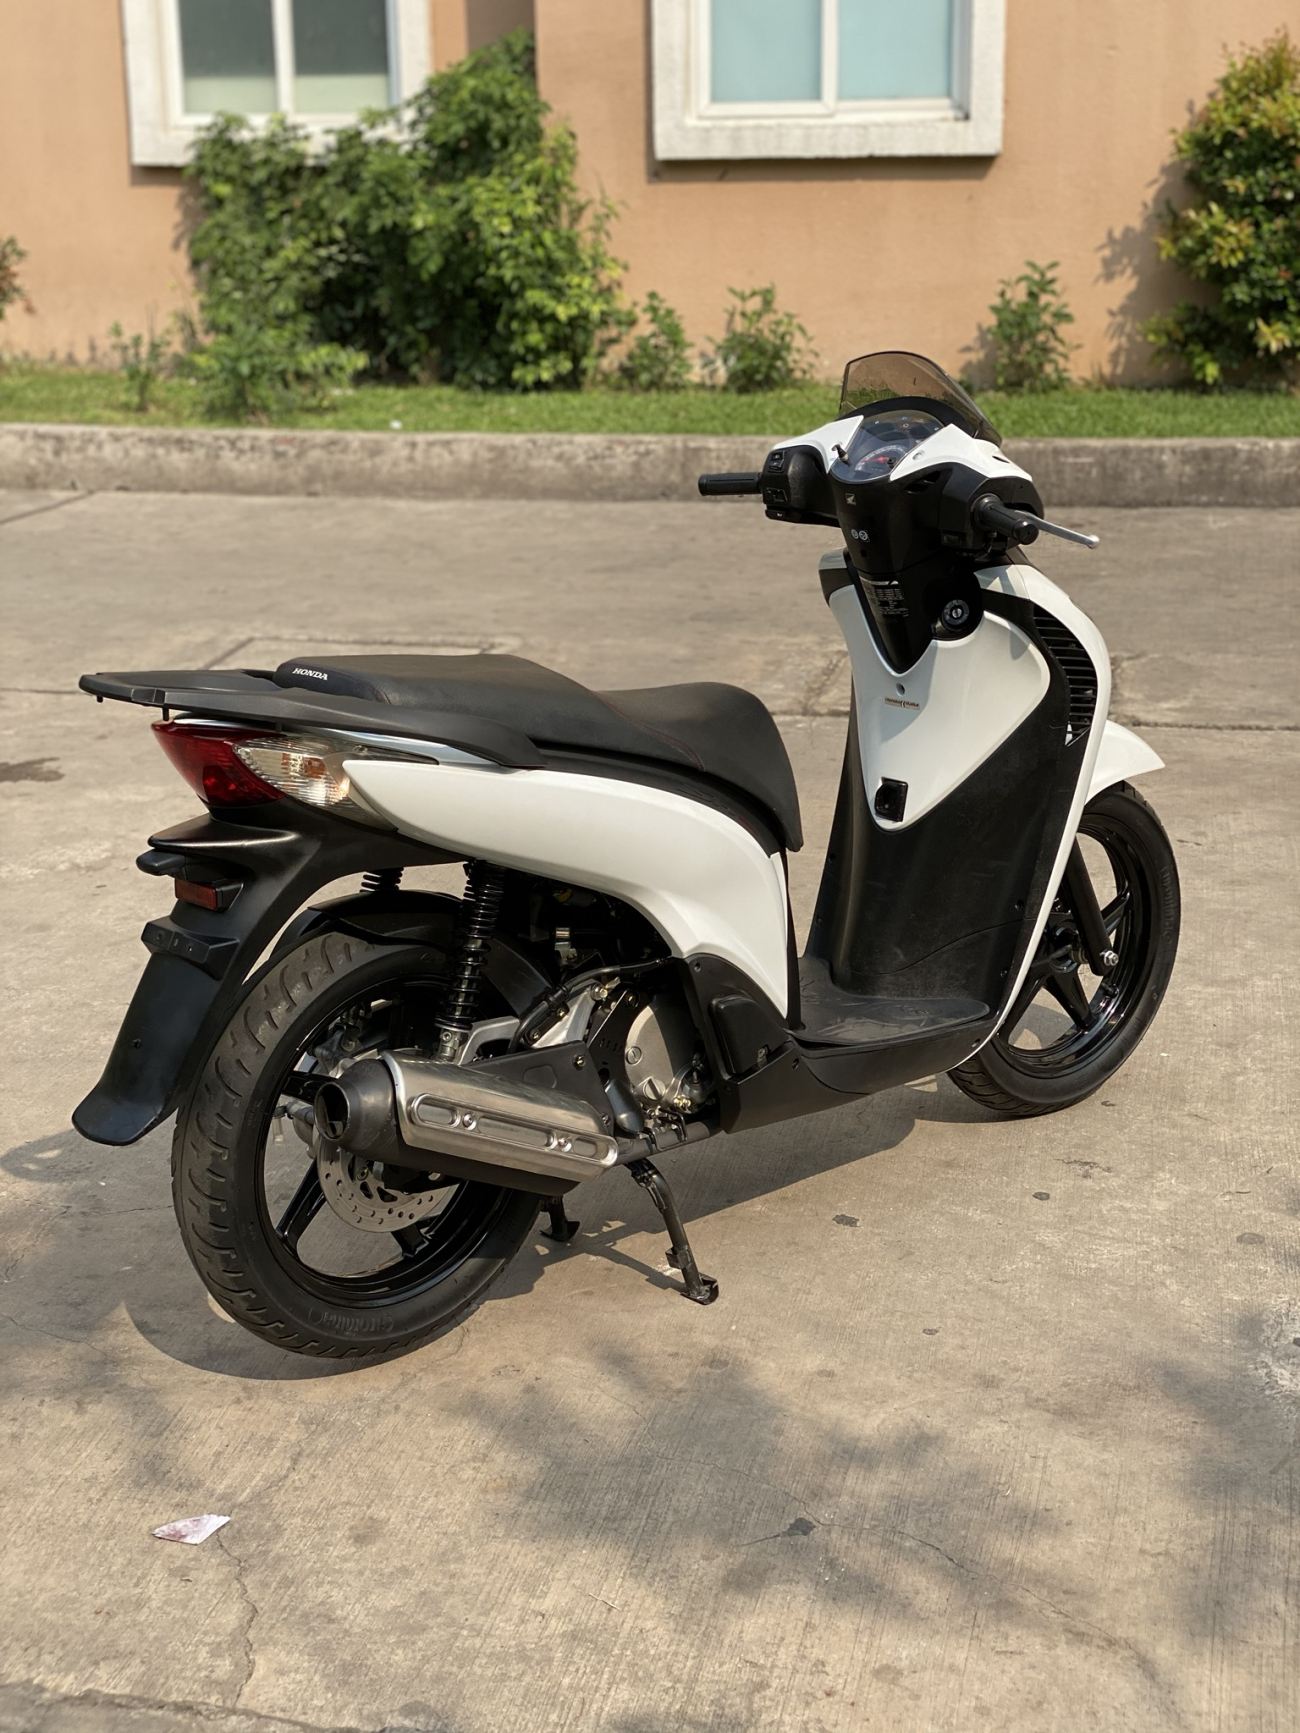 _ Can Ban HONDA SH 125i nhap Y Mau Trang Sporty so may 104 dang ky lan dau 2011 HQCN odo 20K - 2